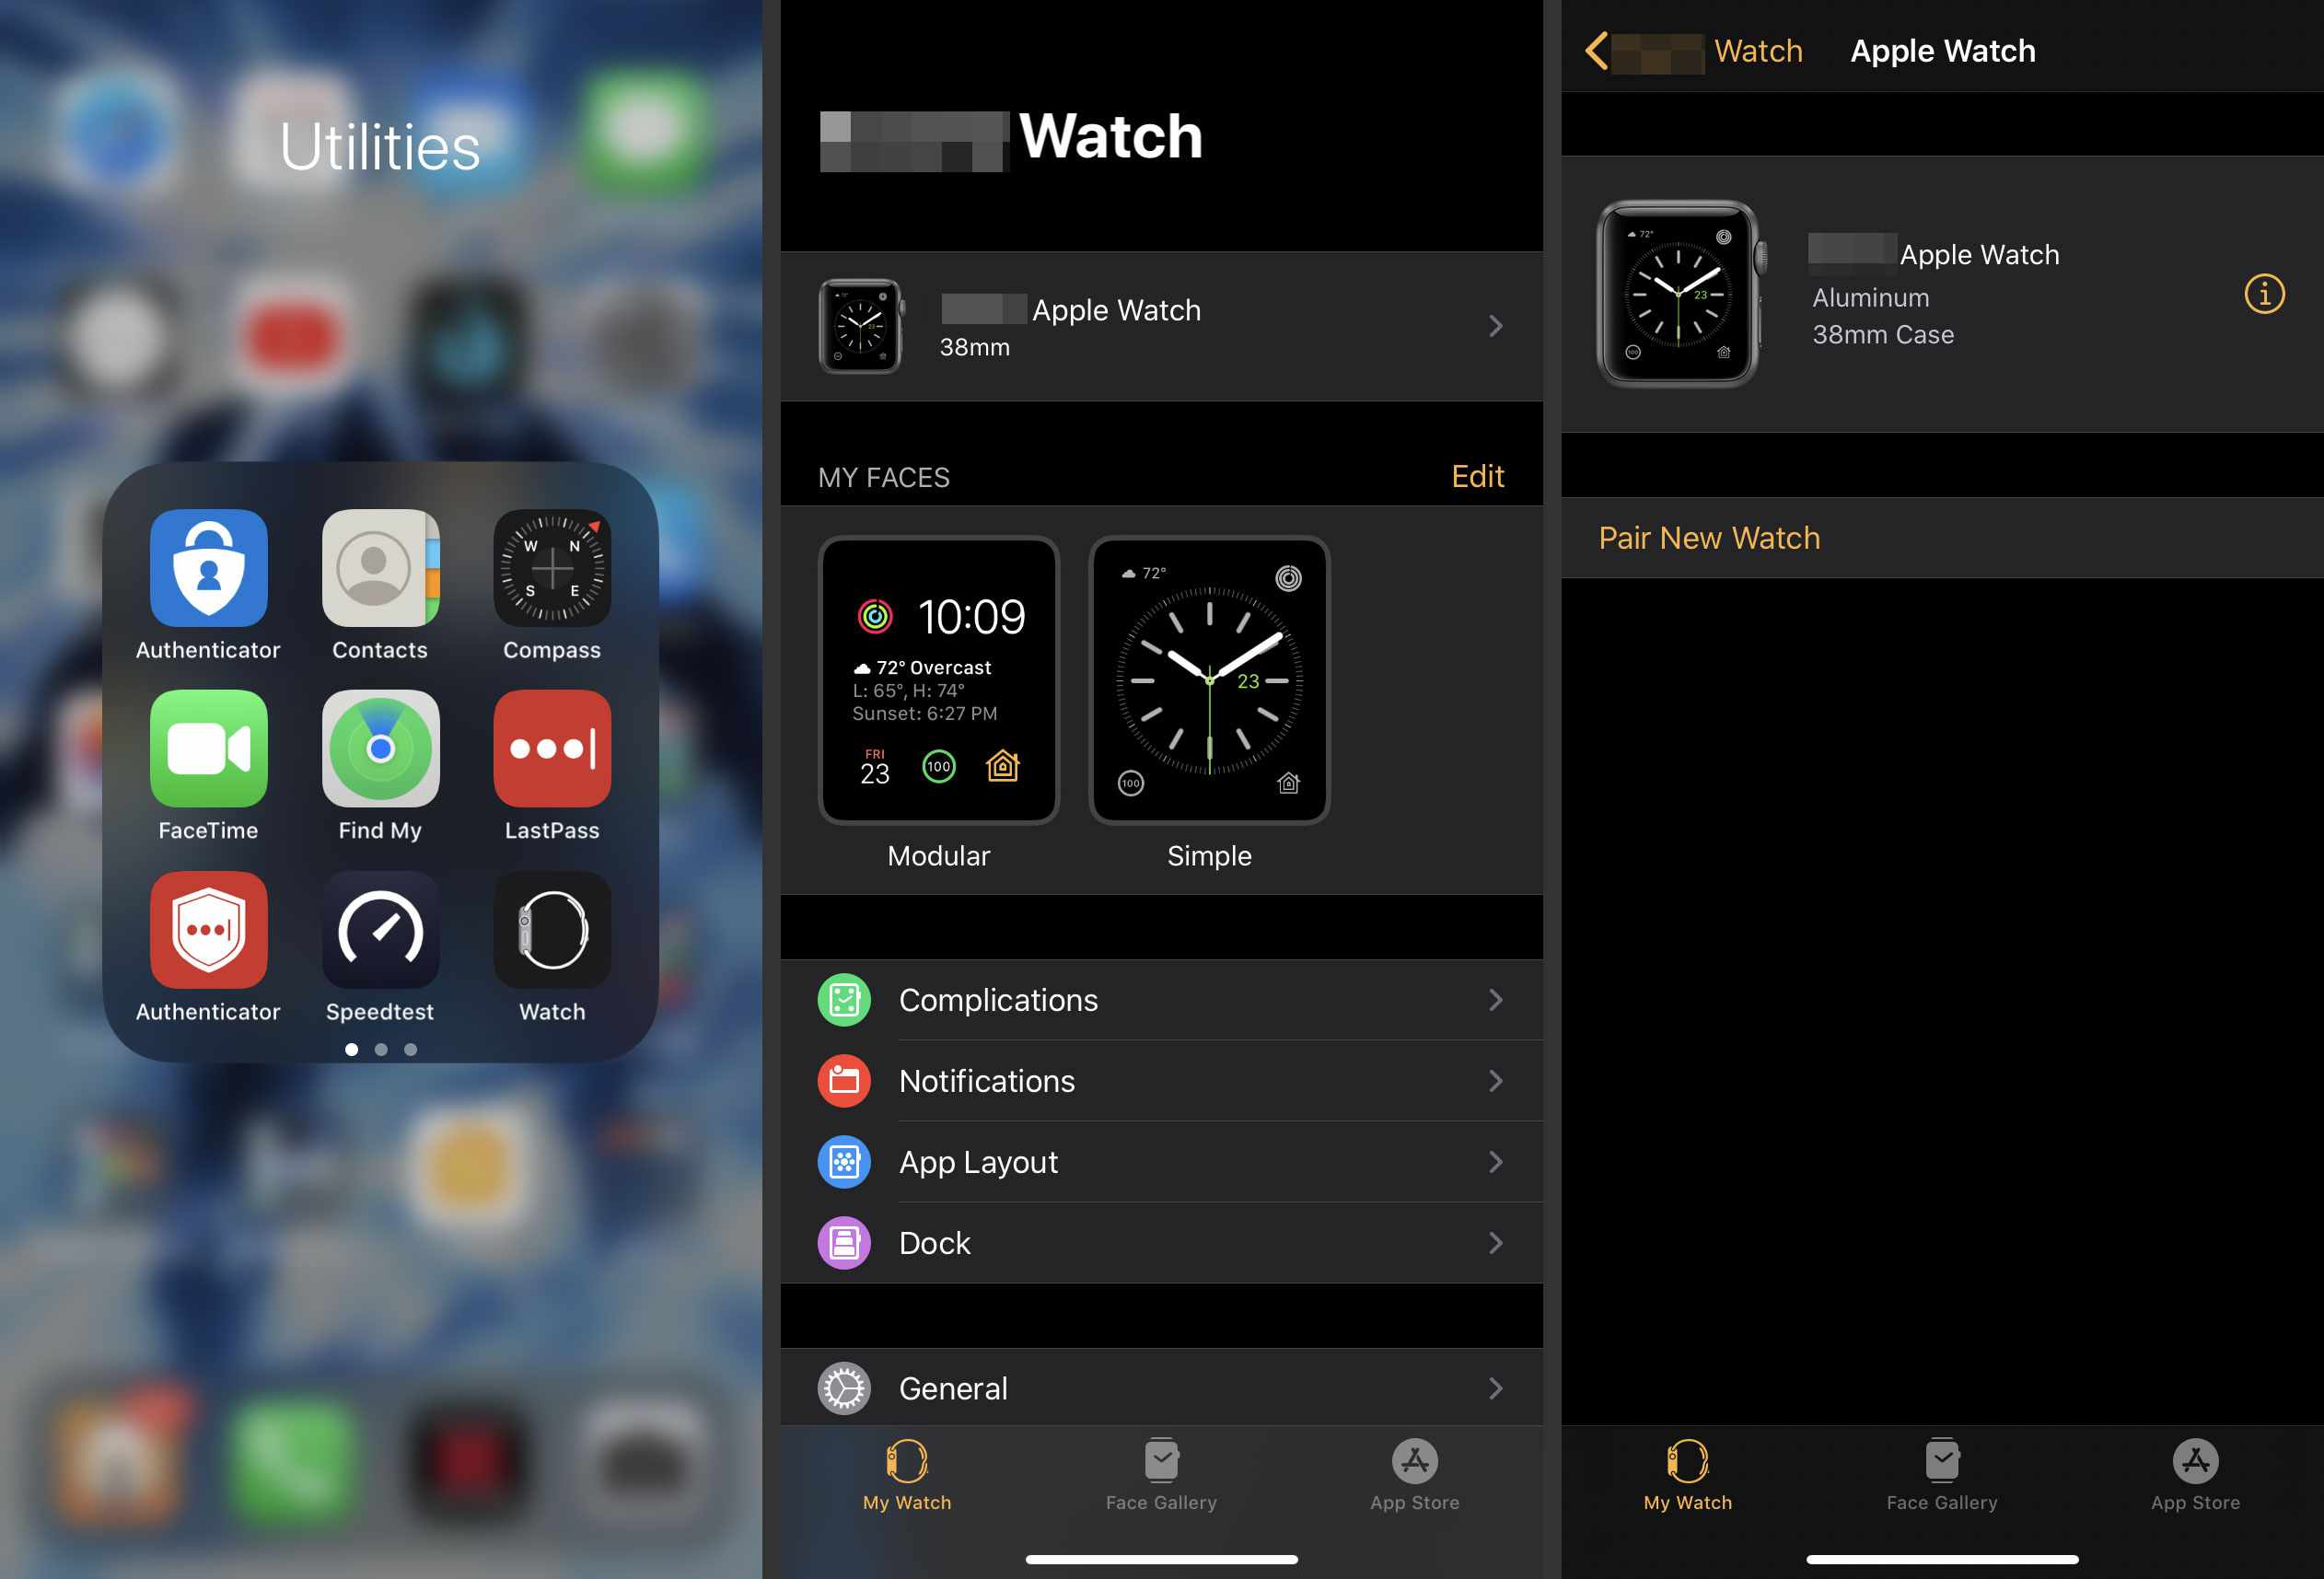 Information button in the iPhone's Watch app